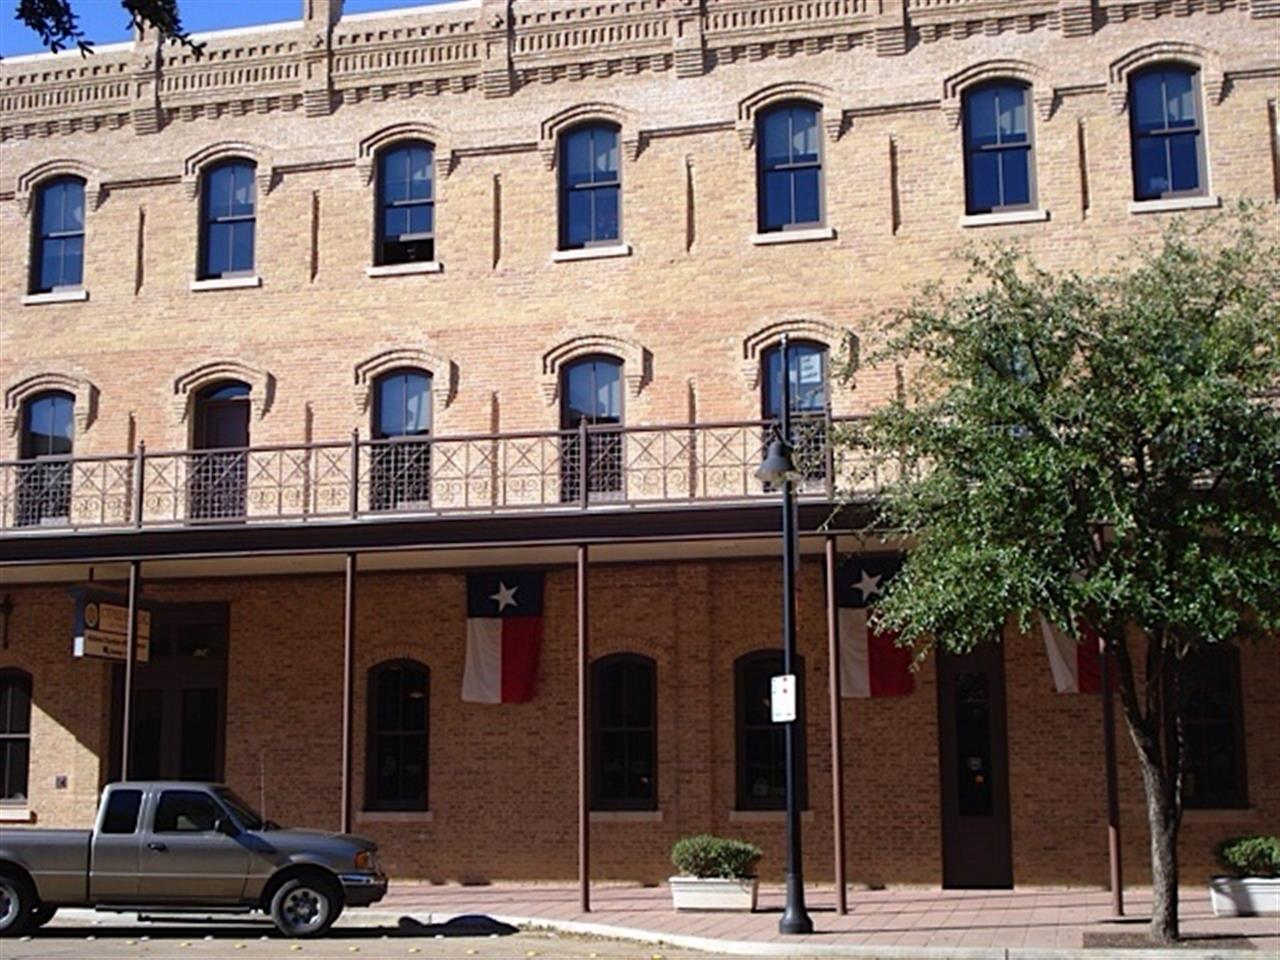 Abilene TX, Downtown, Texas Flag